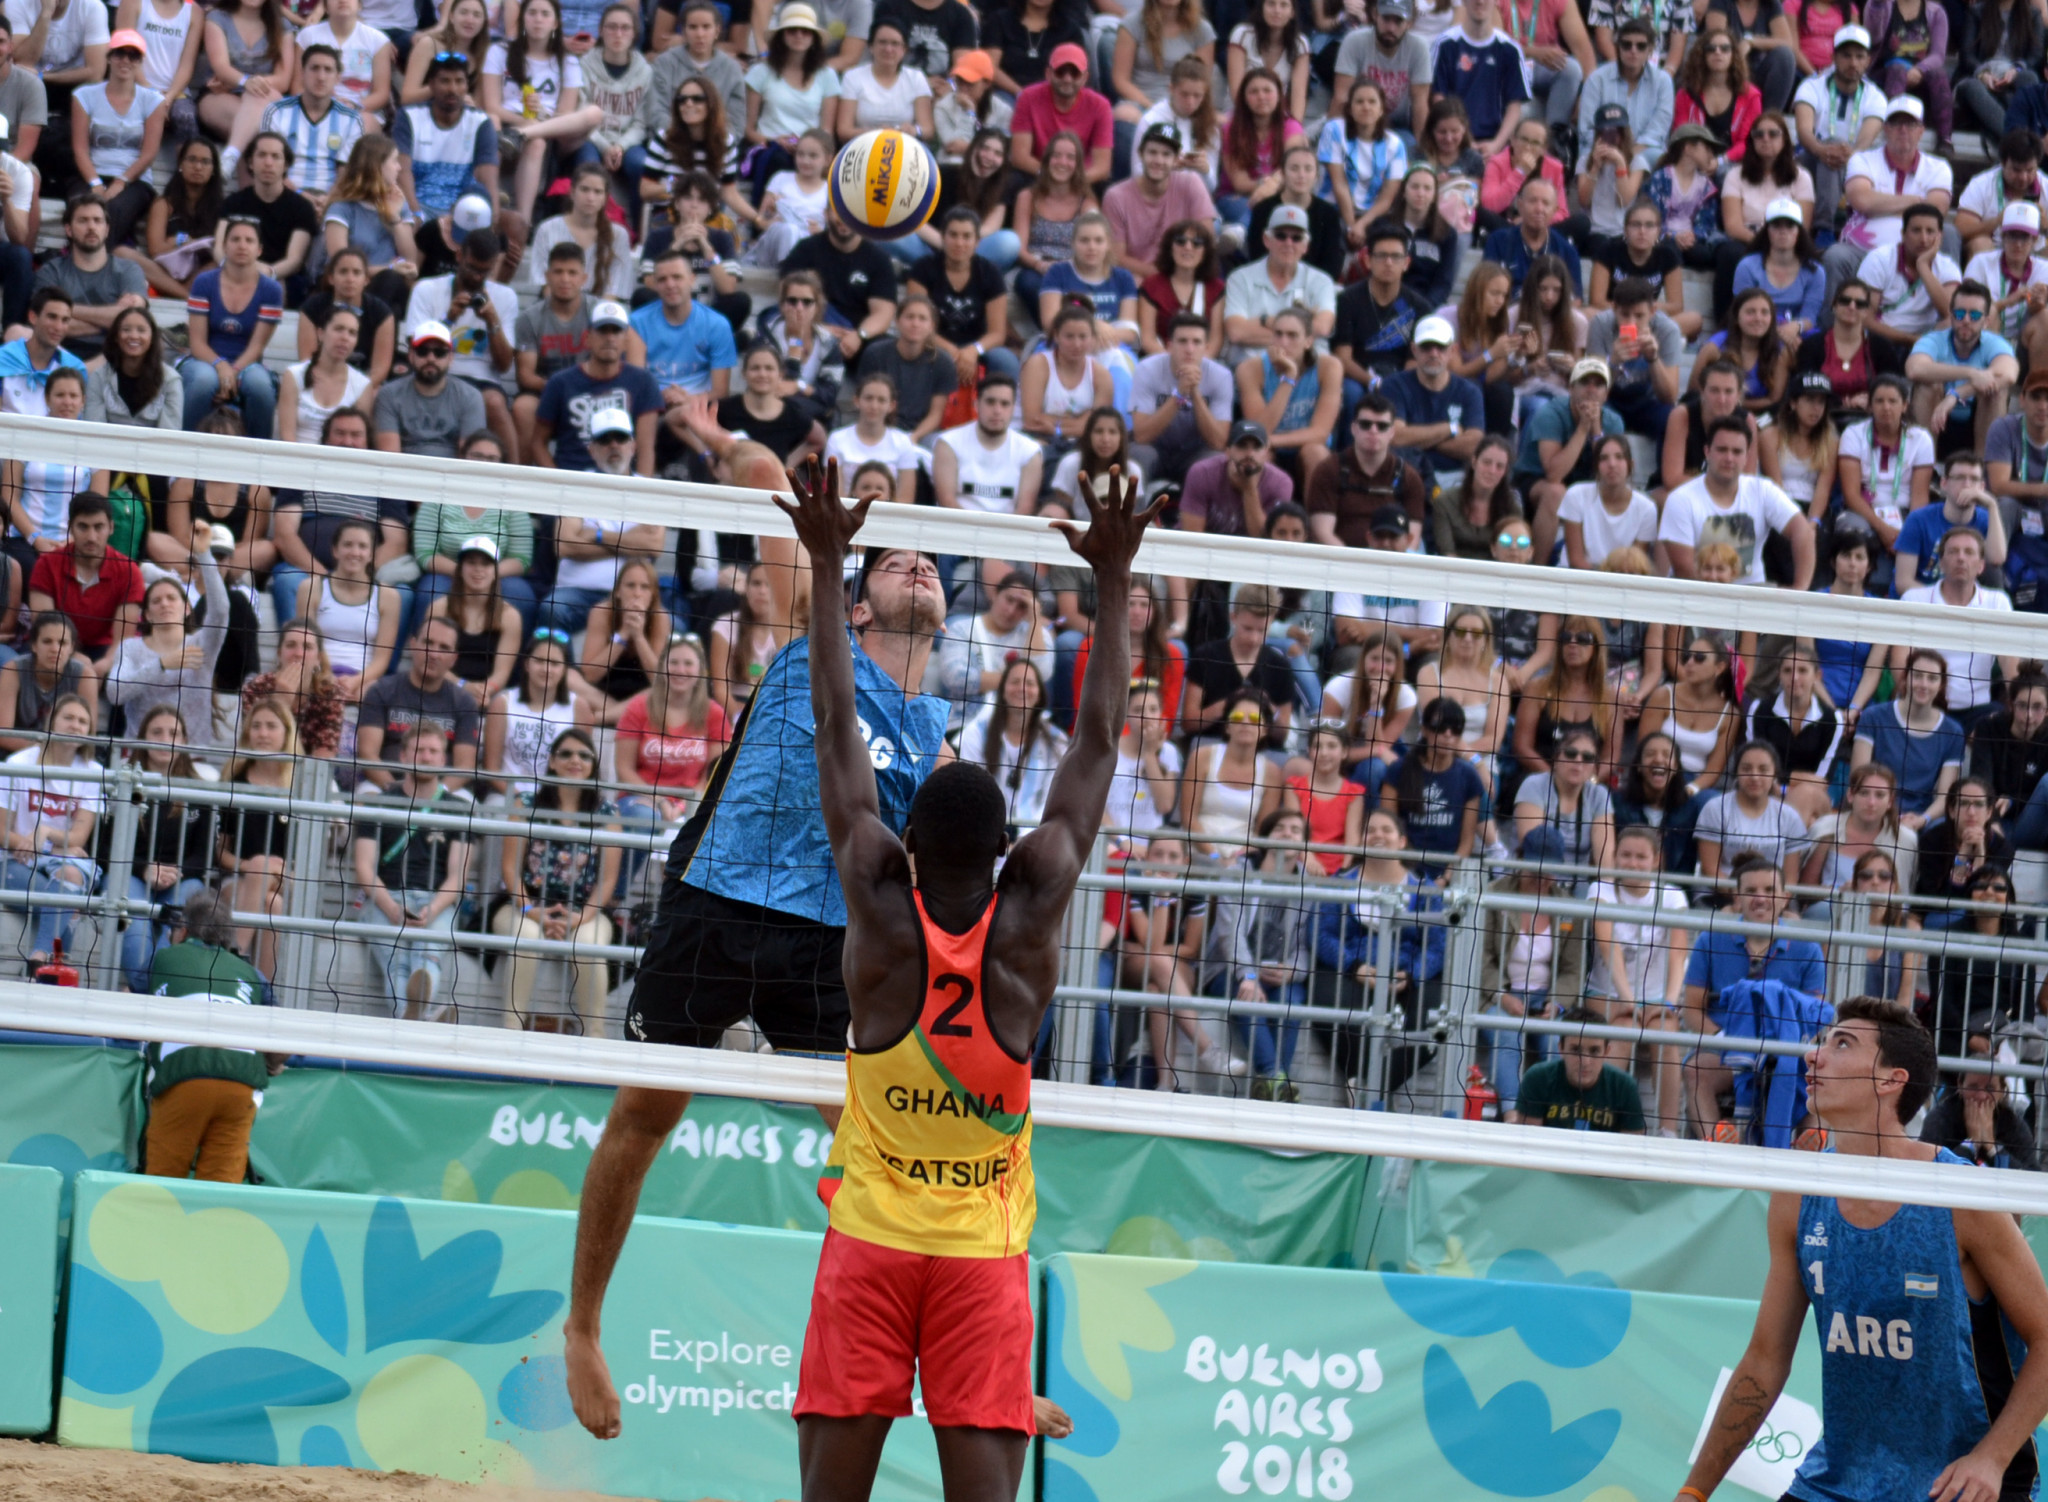 Bautista Amieva, pictured helping the home team win bronze in last year's Youth Olympic Games in Buenos Aires, will be giving his all again at a home venue when the FIVB Snow Volleyball World Tour event starts in Bariloche ©FIVB